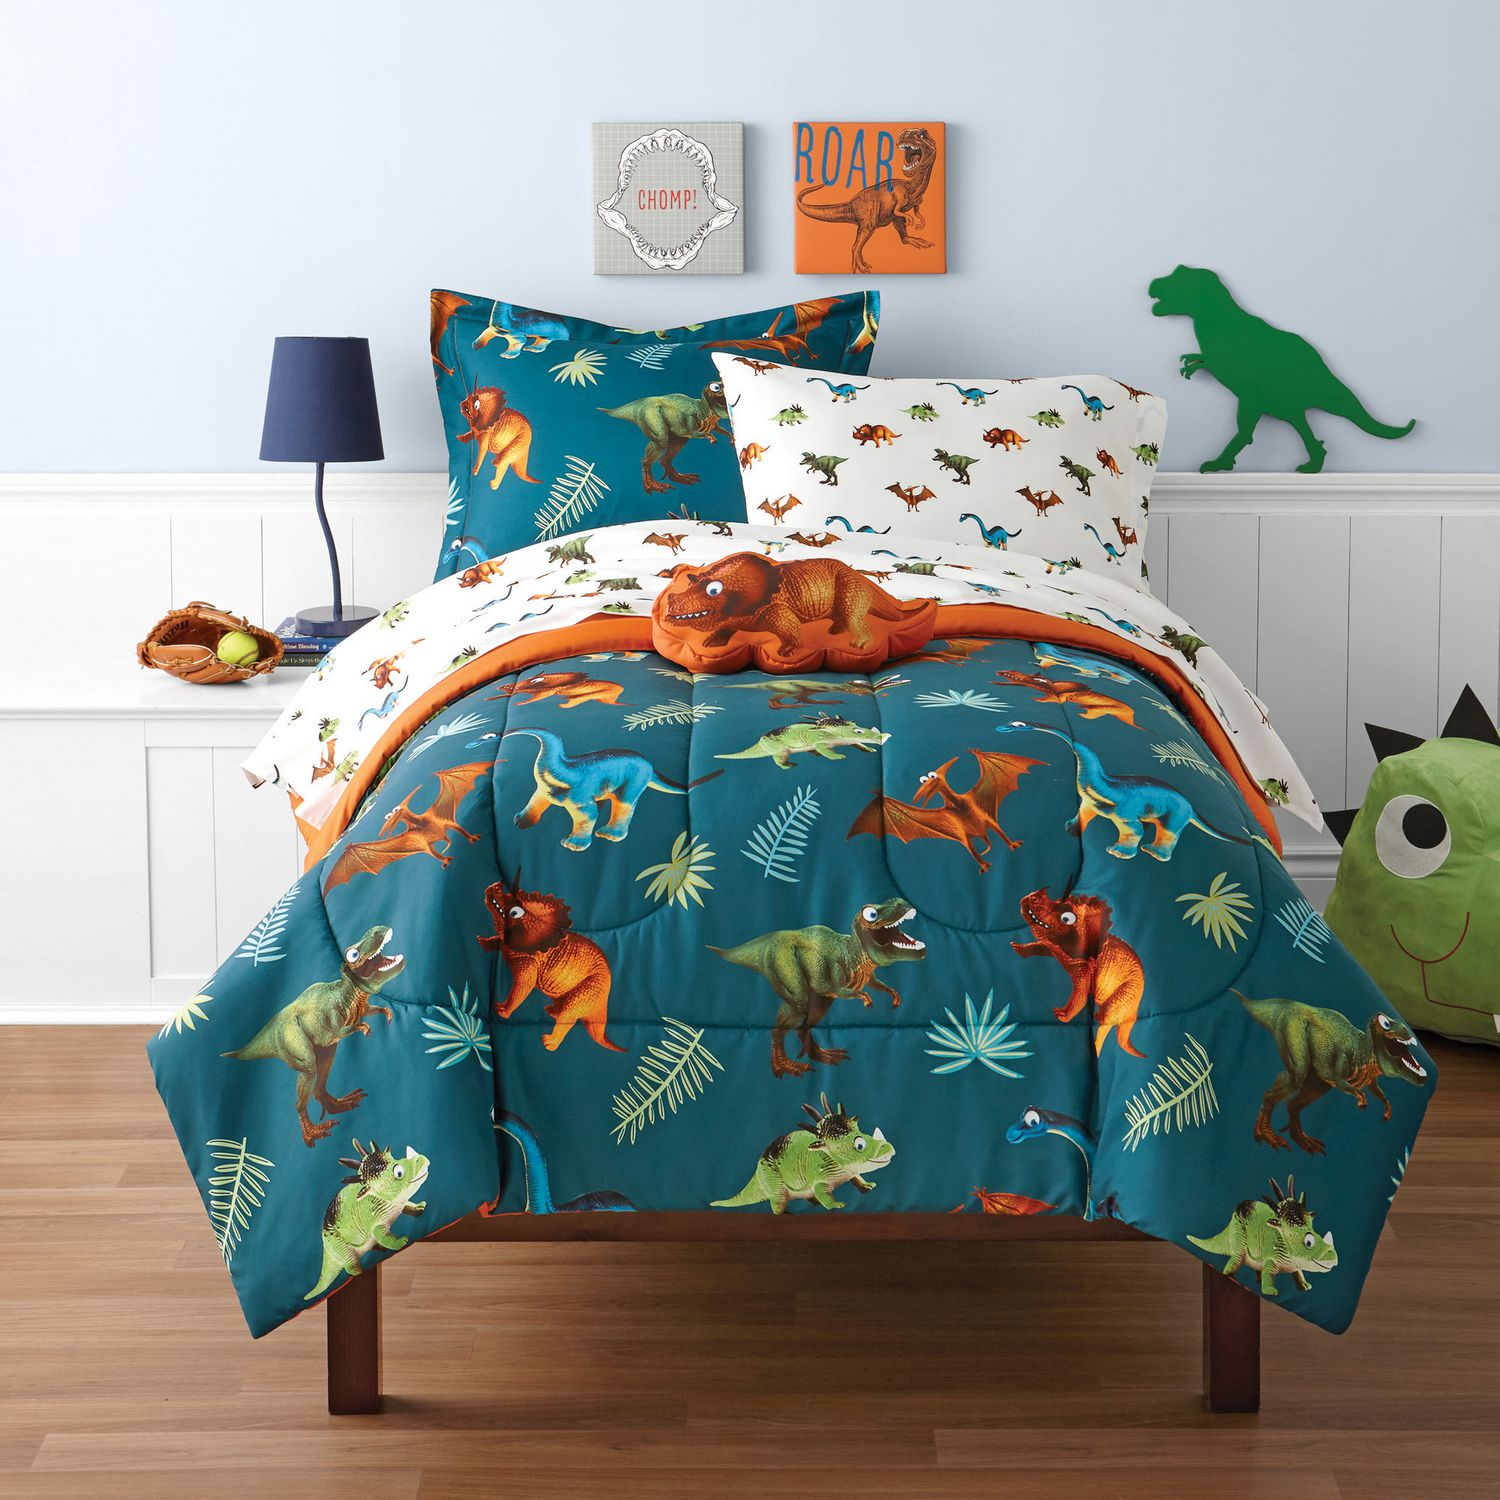 Dinosaur Blanket Walmart 2019 Inspirational Throw Blankets